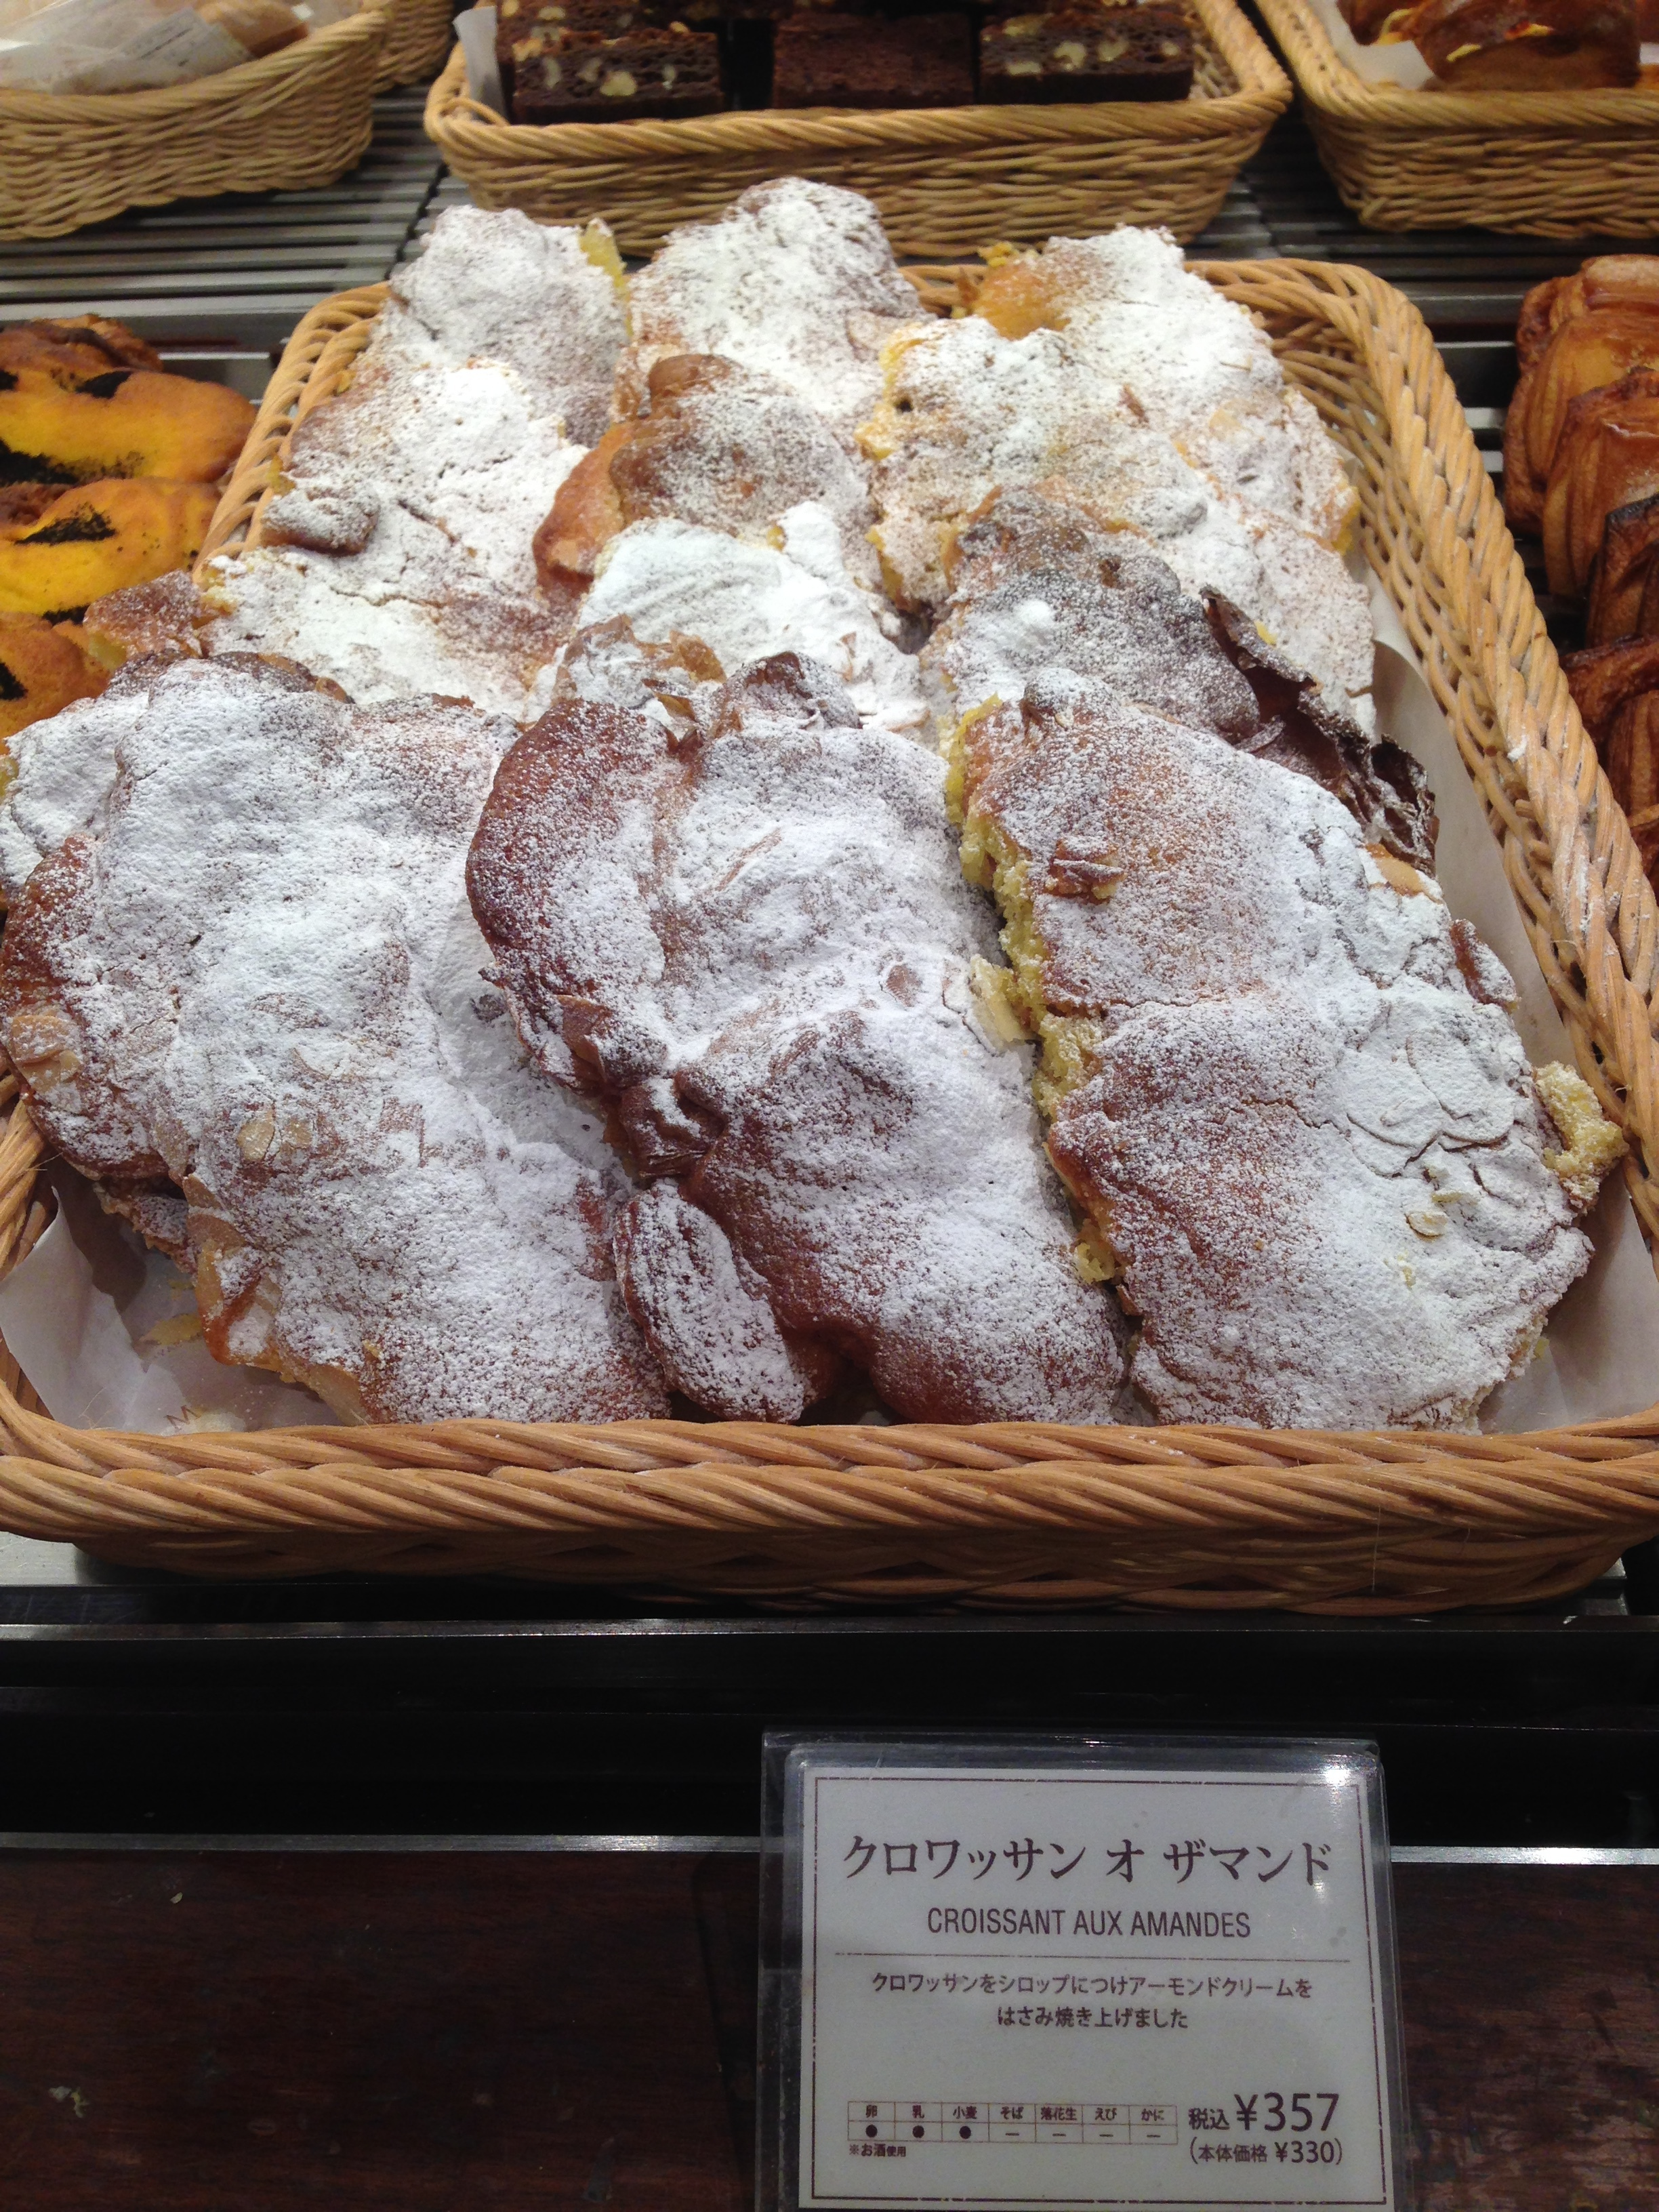 They take the almond croissant and infuse it with that perfect Japanese touch. Moisture levels, high.